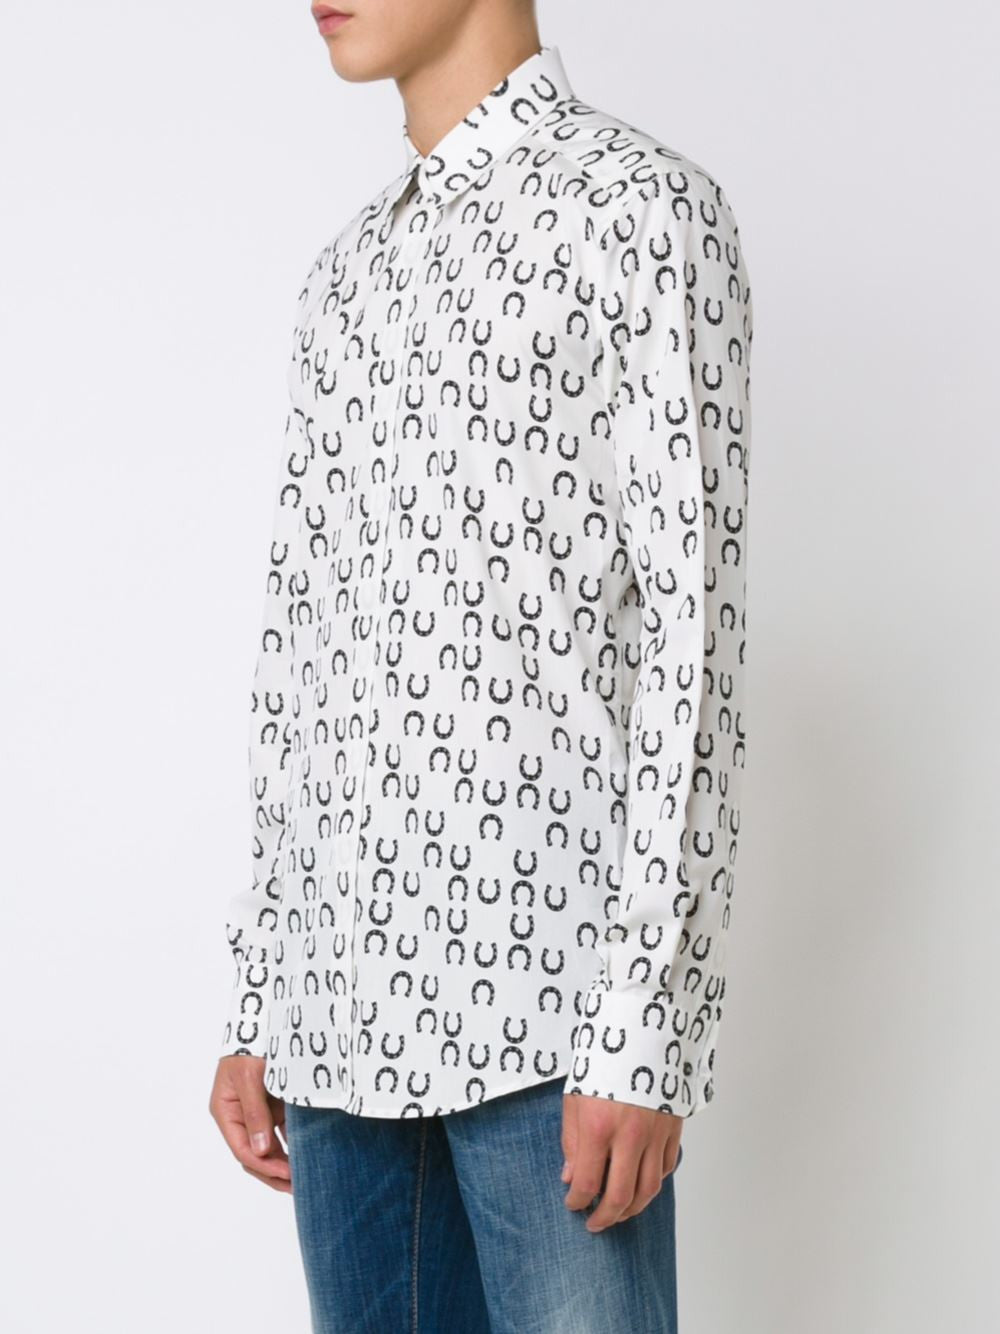 Horseshoe Pattern Shirt | G5DS4T-FS5ZU